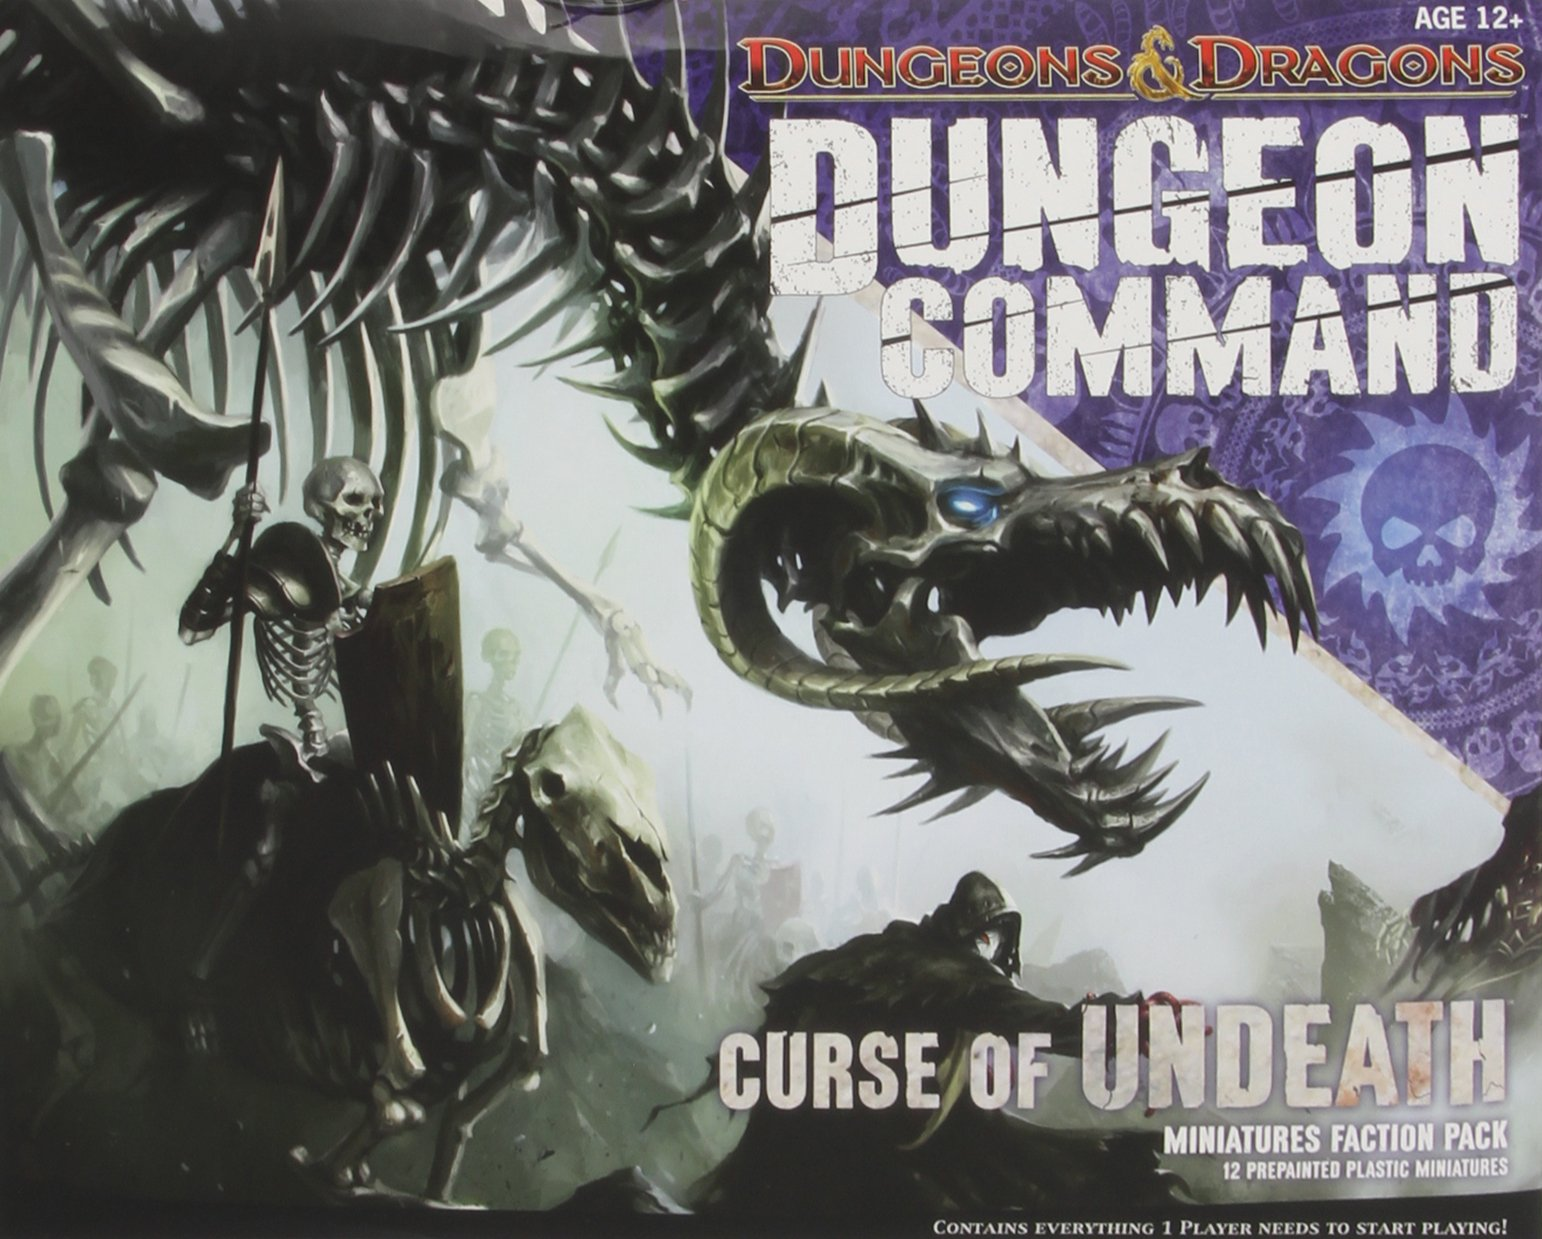 Dungeon Command: Curse of Undeath: A Dungeons & Dragons Expansion Pack Dungeons and Dragons: Amazon.es: Wizards RPG Team: Libros en idiomas extranjeros